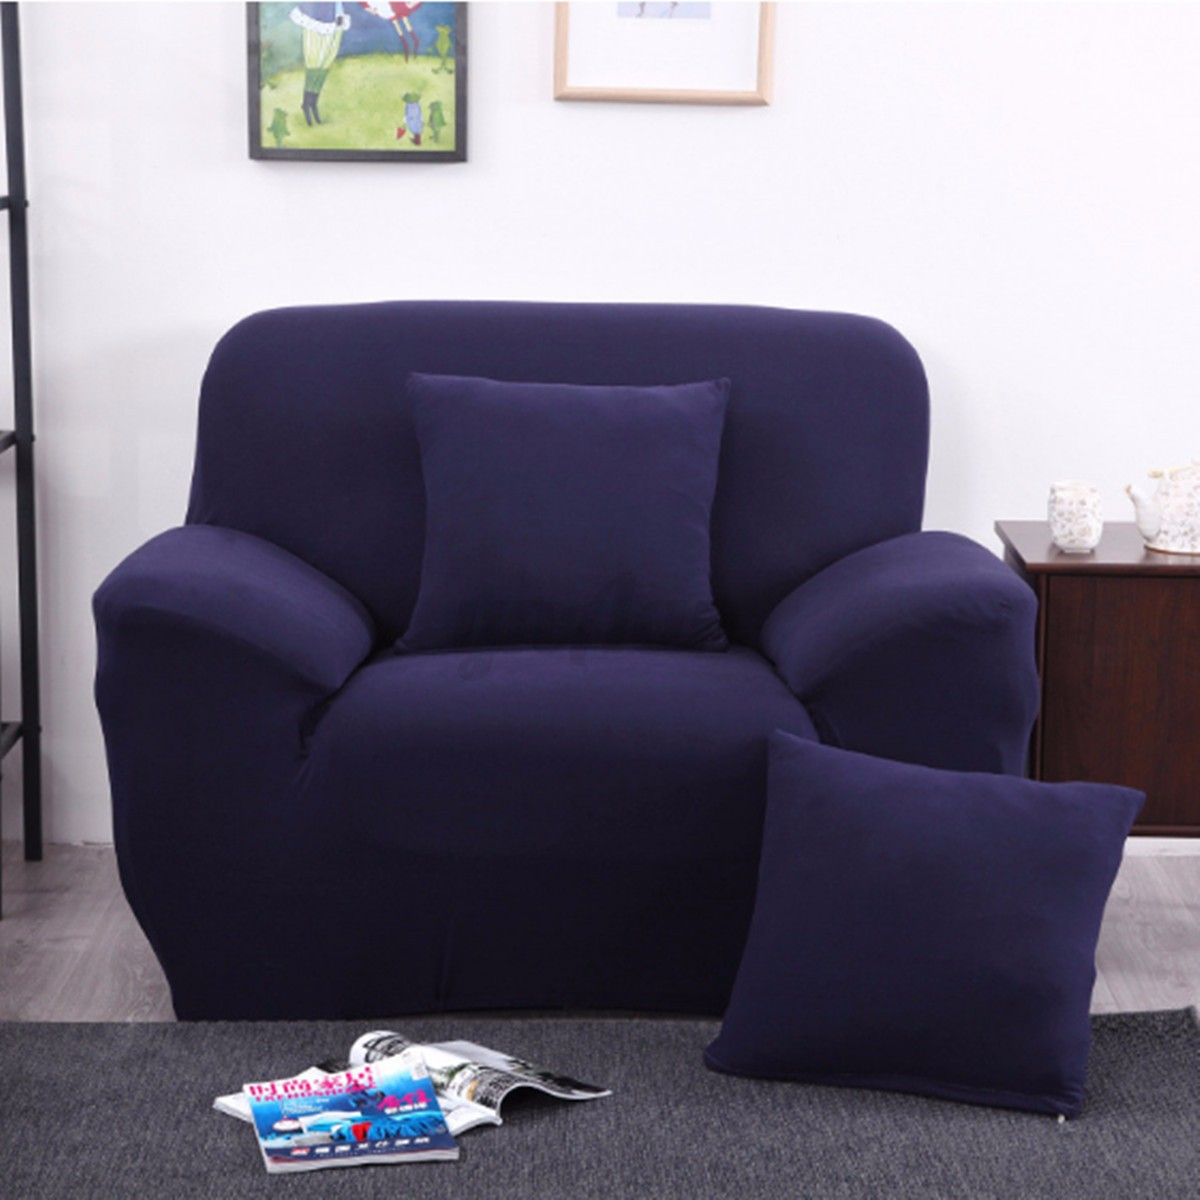 fitted chair covers ebay and half canada 1 2 3 seater sofa cover pillow case easy fit stretch